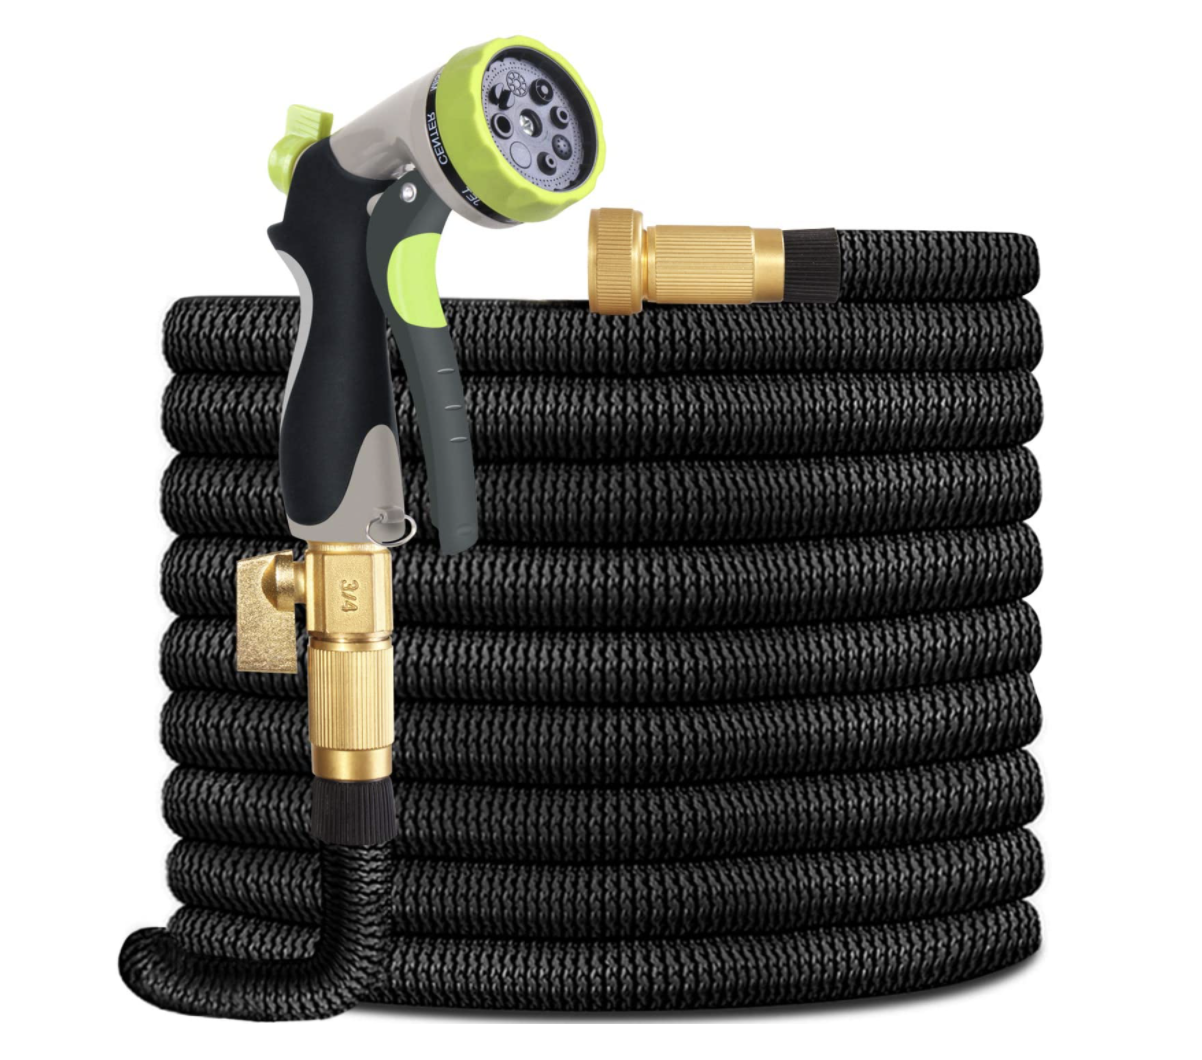 Spray down your deck or clean off your shutters with this lightweight, flexible, and durable garden hose. The 8-pattern sprayer also features a water flow valve.Find it here.